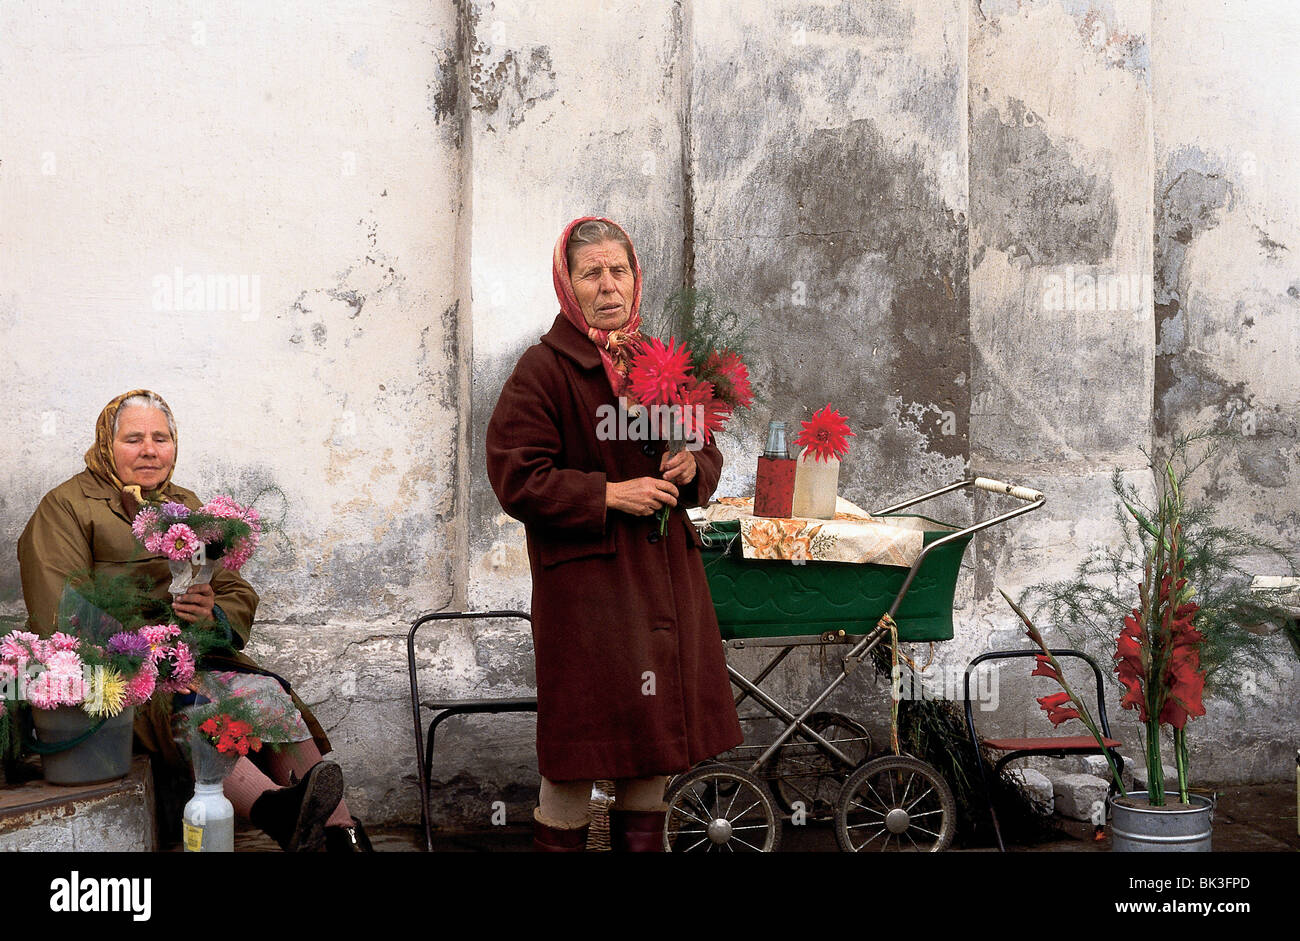 Street vendors selling flowers in Russia - Stock Image